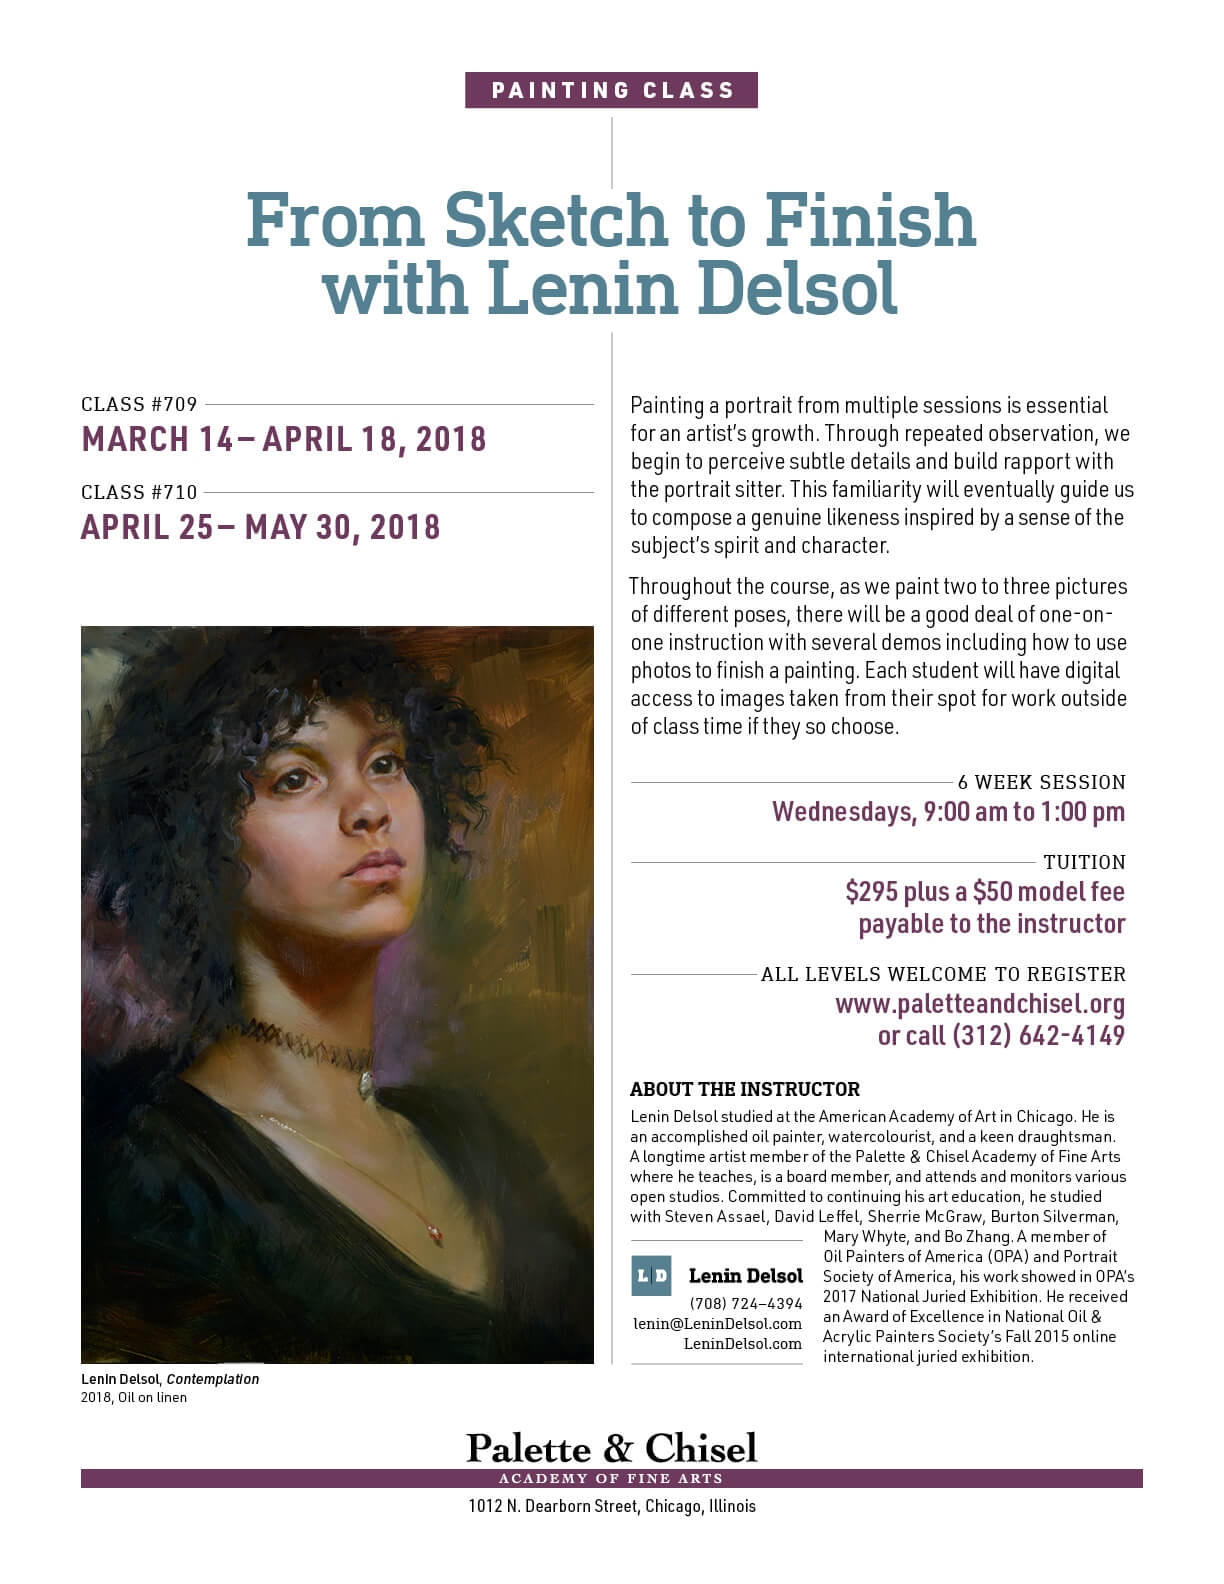 From Sketch To Finish with Lenin Delsol Spring 2018 Sessions